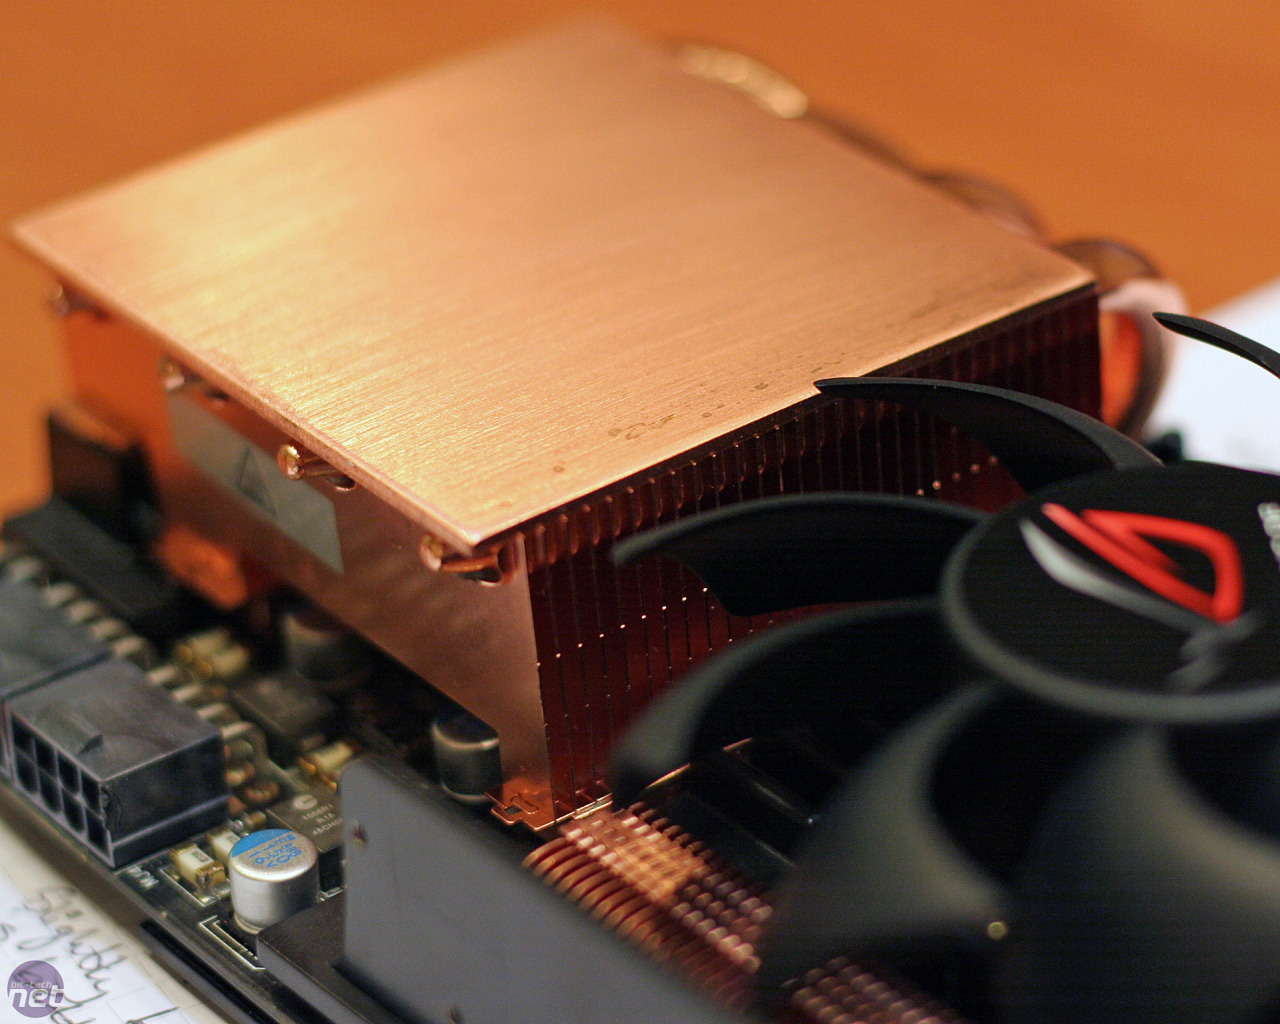 http://images.bit-tech.net/content_images/2010/06/asus-ares-and-immensity-technology-preview/ares-7.jpg